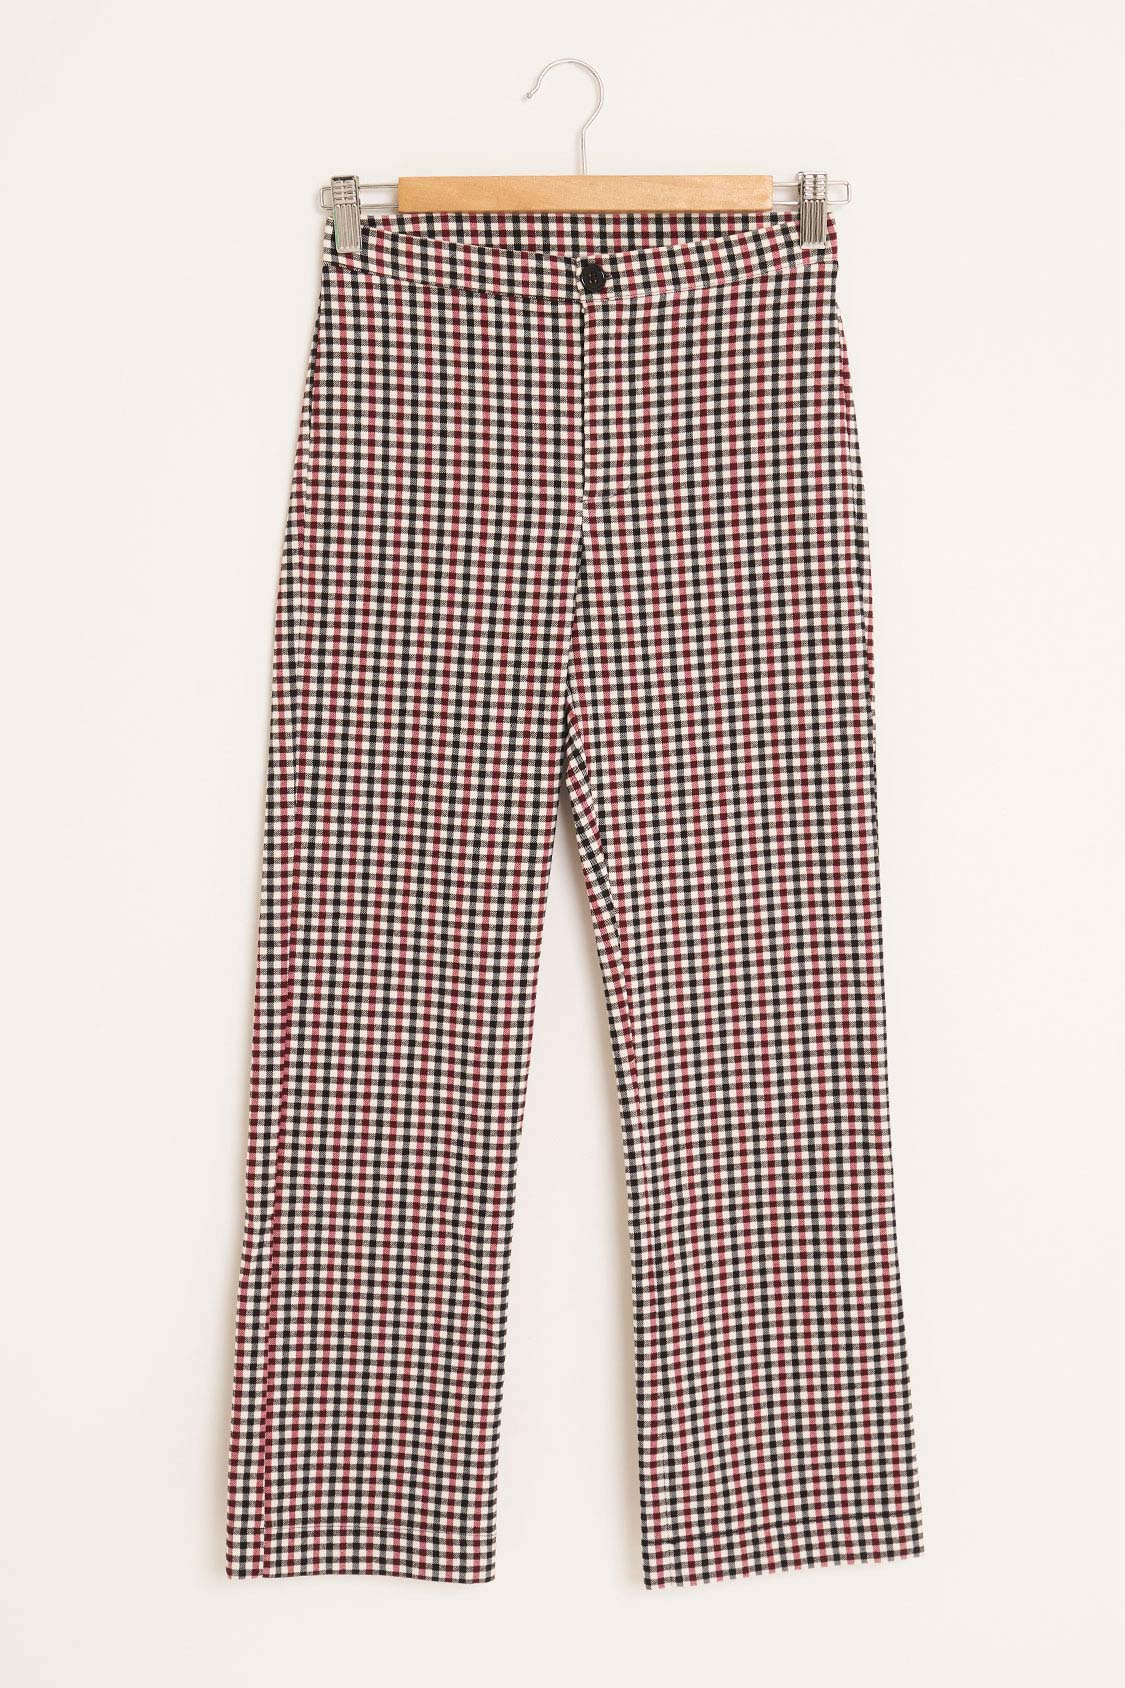 f7ee1b242b Checkered pants. Skip to the beginning of the images gallery